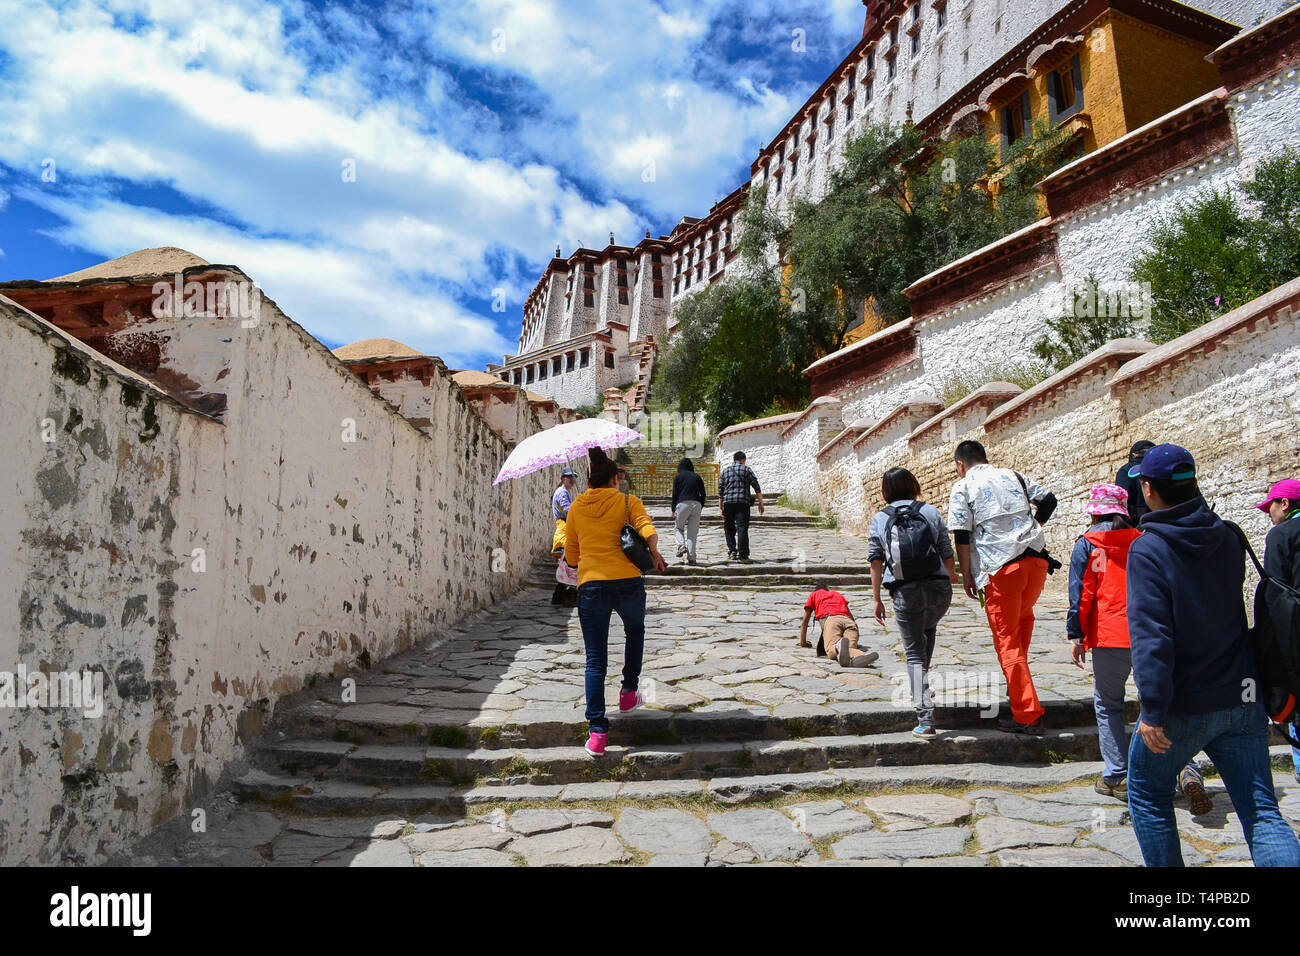 People visiting Potala Palace, the original residence of the Dalai Lama and the most important architecture of Tibetan Buddhism in Lhasa, Tibet - Stock Image